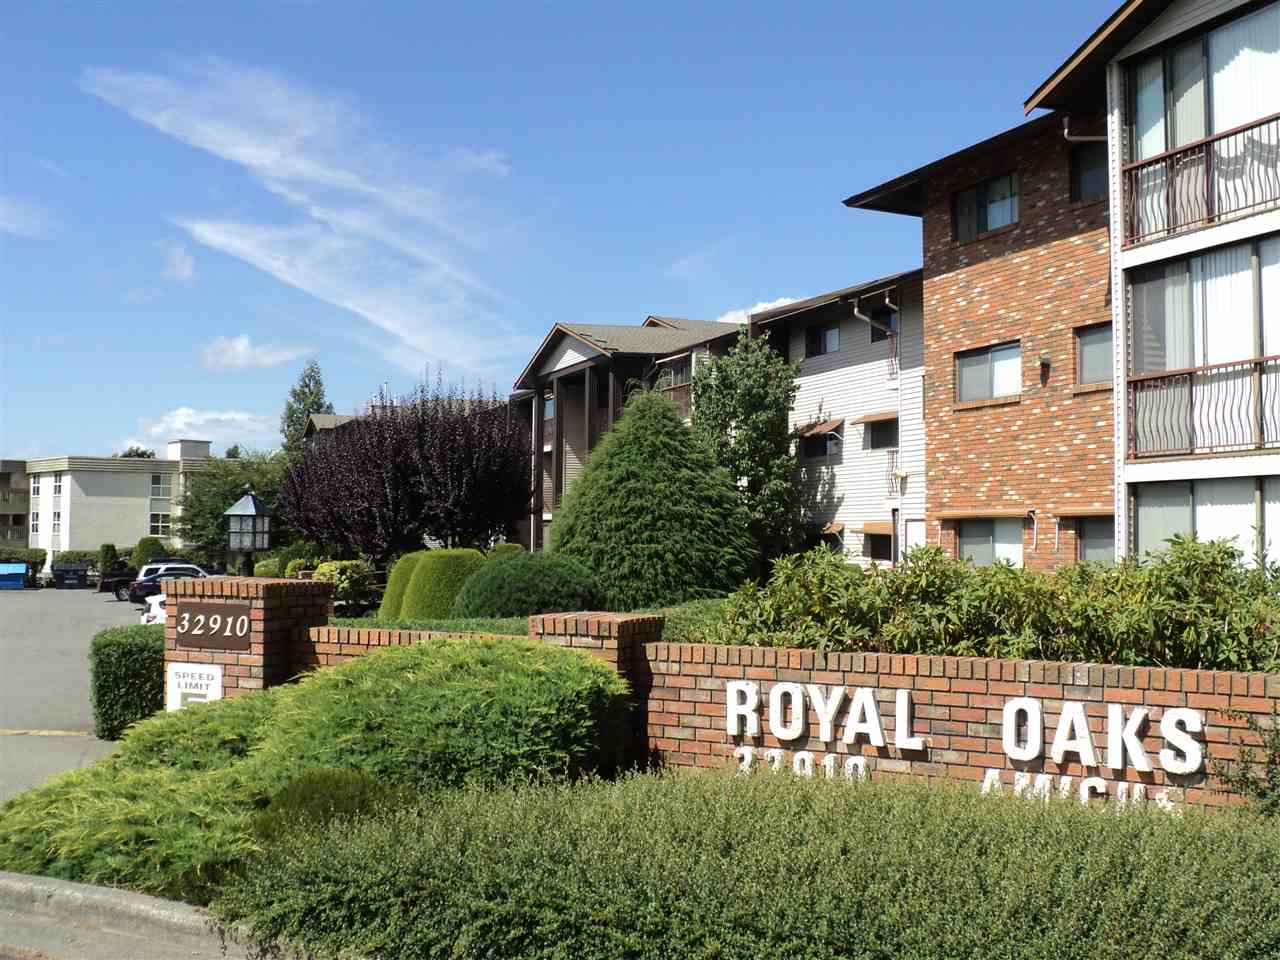 Royal Oaks 55+ one bedroom almost 700 sq. ft. on the ground floor located close to elevator and on the quiet side of the building. This well managed complex is located within walking distance to shopping, restaurants, transit and business services. Enclosed deck, storage locker and parking are conveniently located. Excellent visitor parking. No pets or rentals.